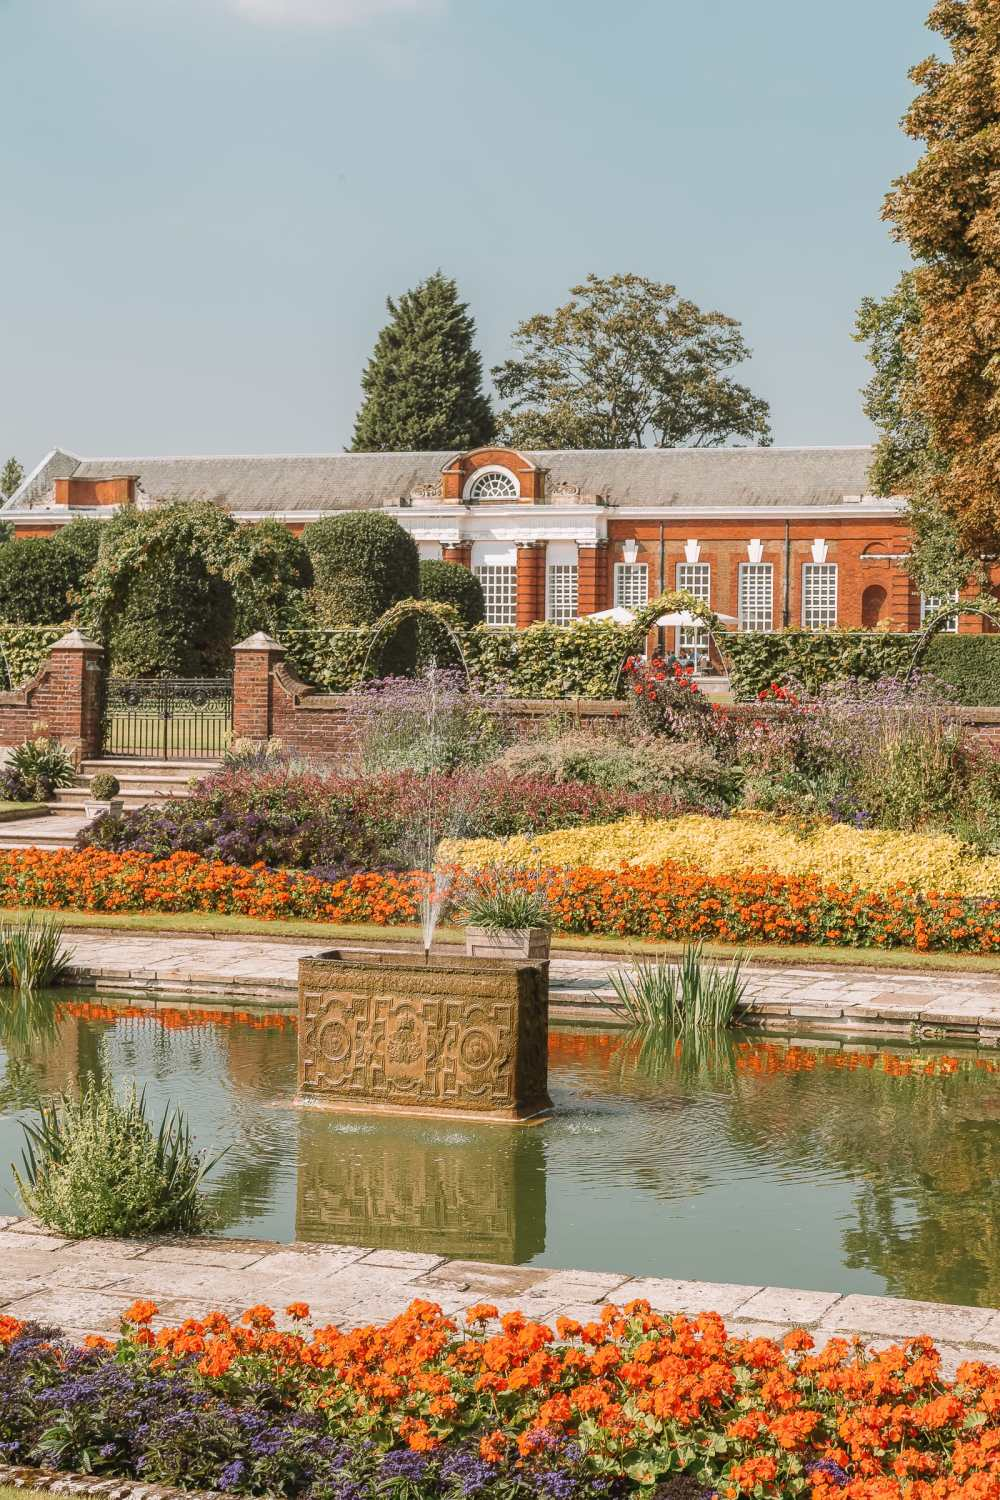 10 Beautiful Palaces In London You Have To Visit (13)